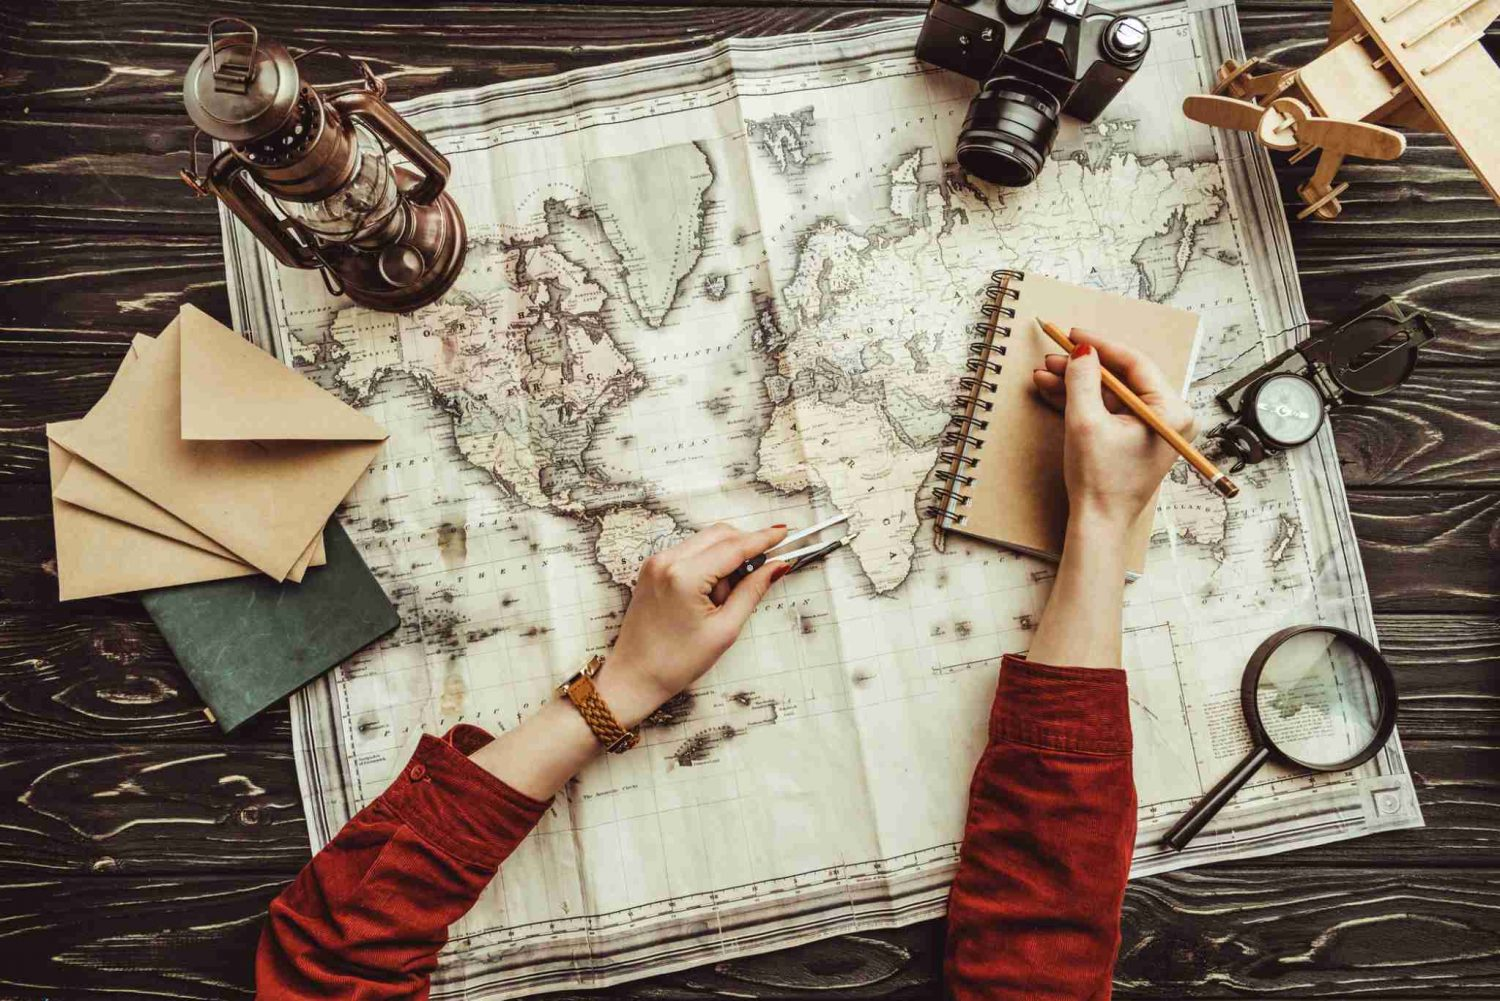 Birds' eye view of a woman in a red sweater recording her travel memories with a journal, map and postcards